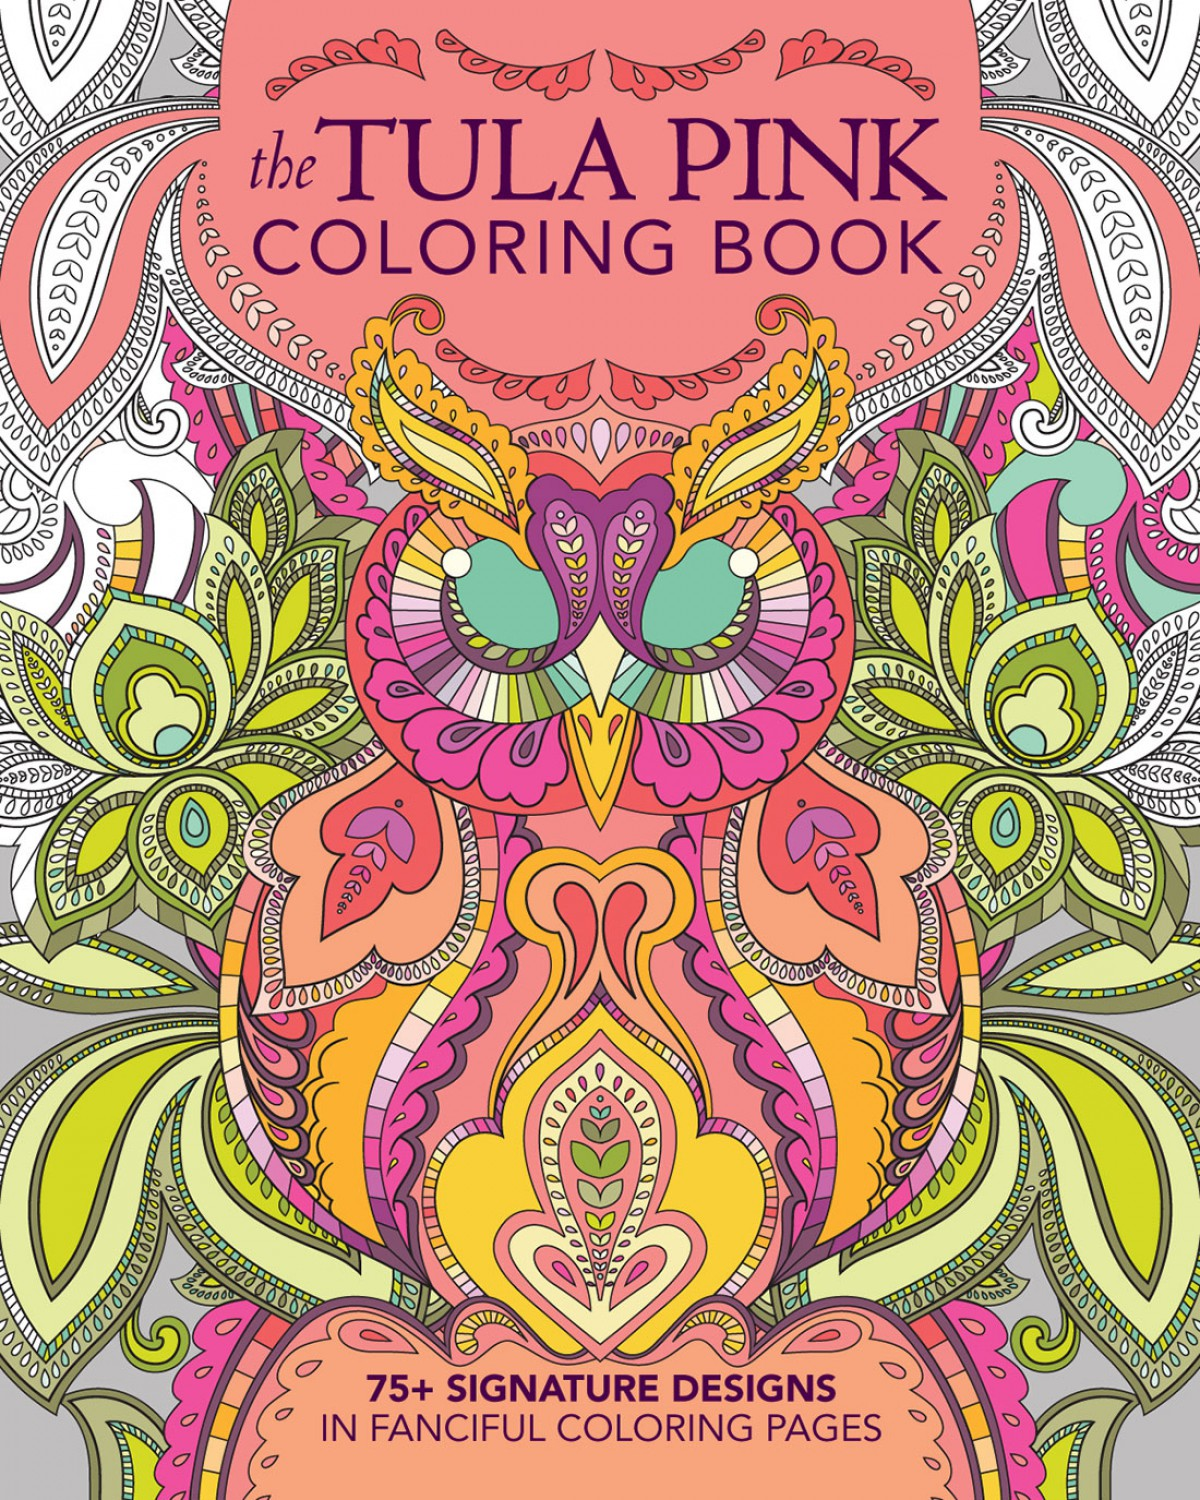 201adf67fbf6c Tula Pink Coloring Book - Softcover S0476  15.95  each